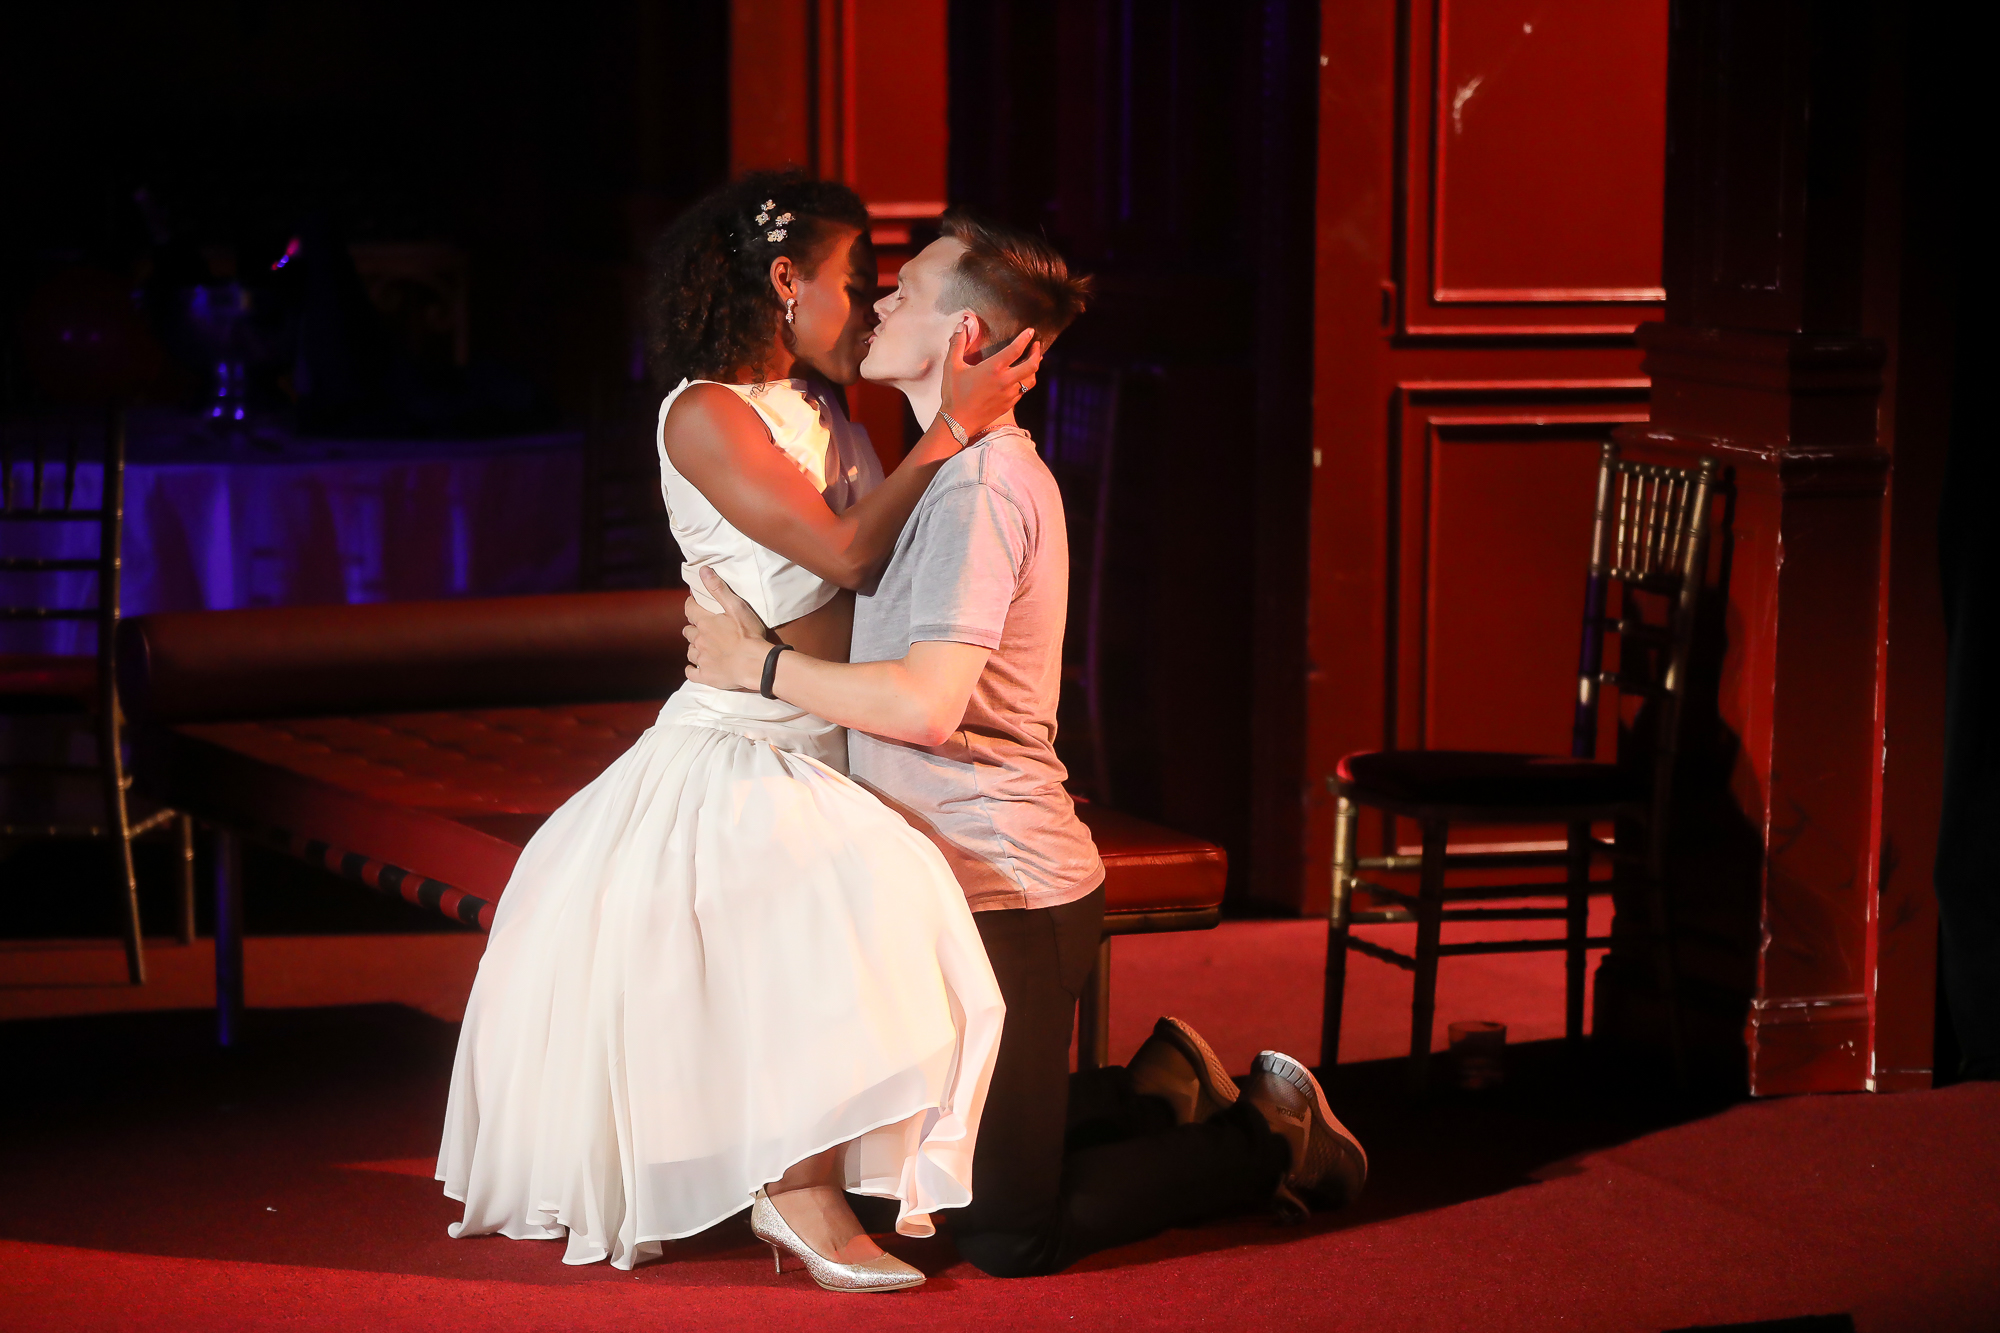 Photo of Danaya Esperanza as Juliet and Sam Lilja as Romeo in Romeo & Juliet by Tony Powell.